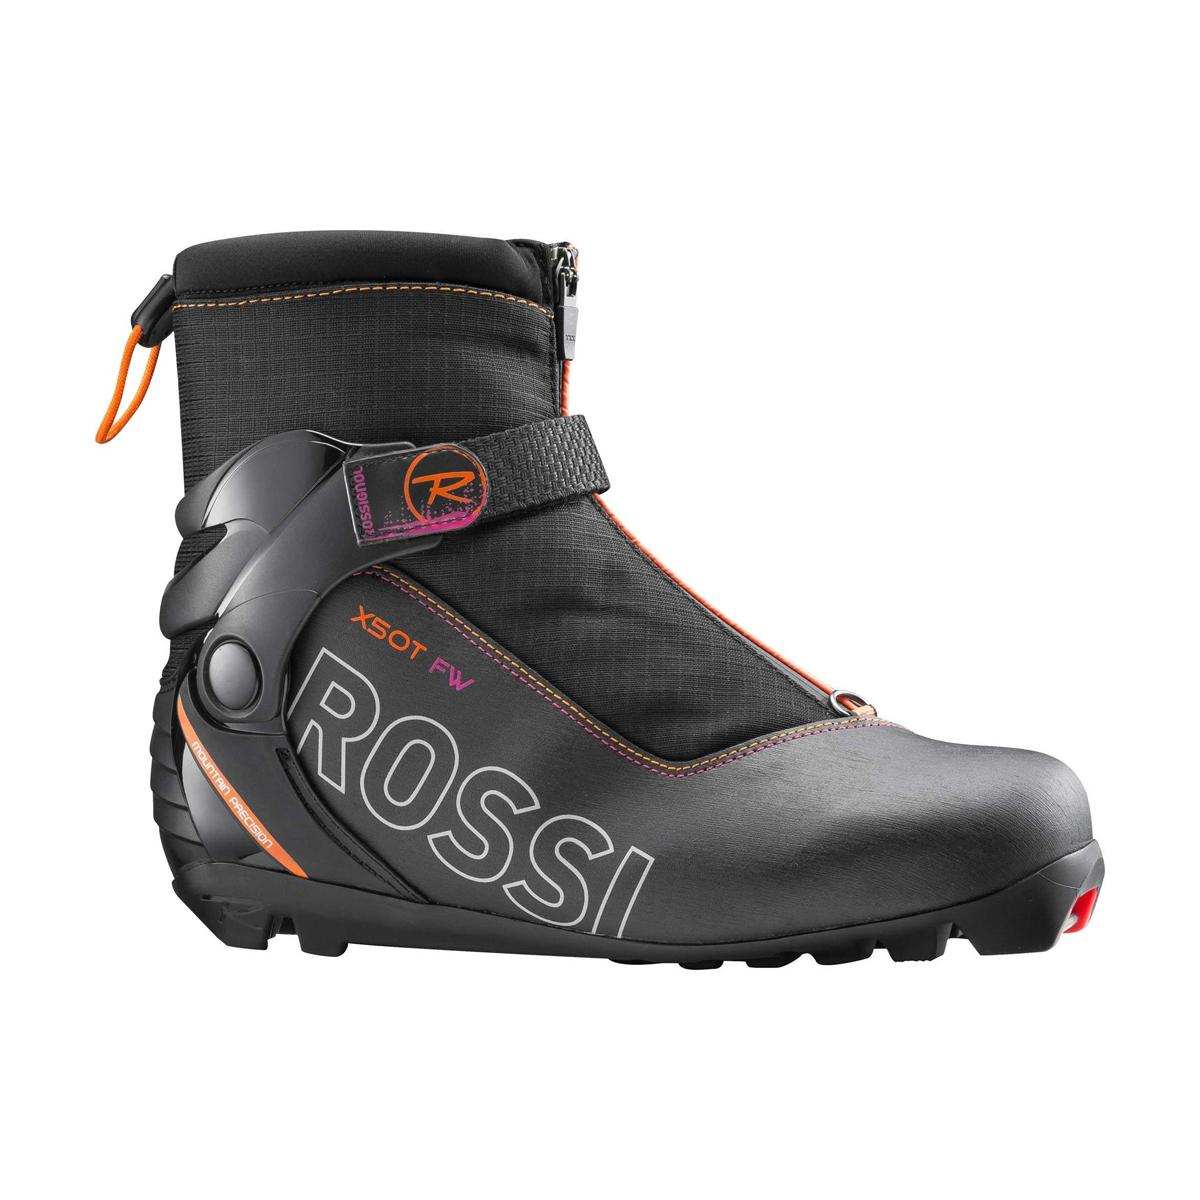 Rossignol Women's X-5 OT Boot in Black